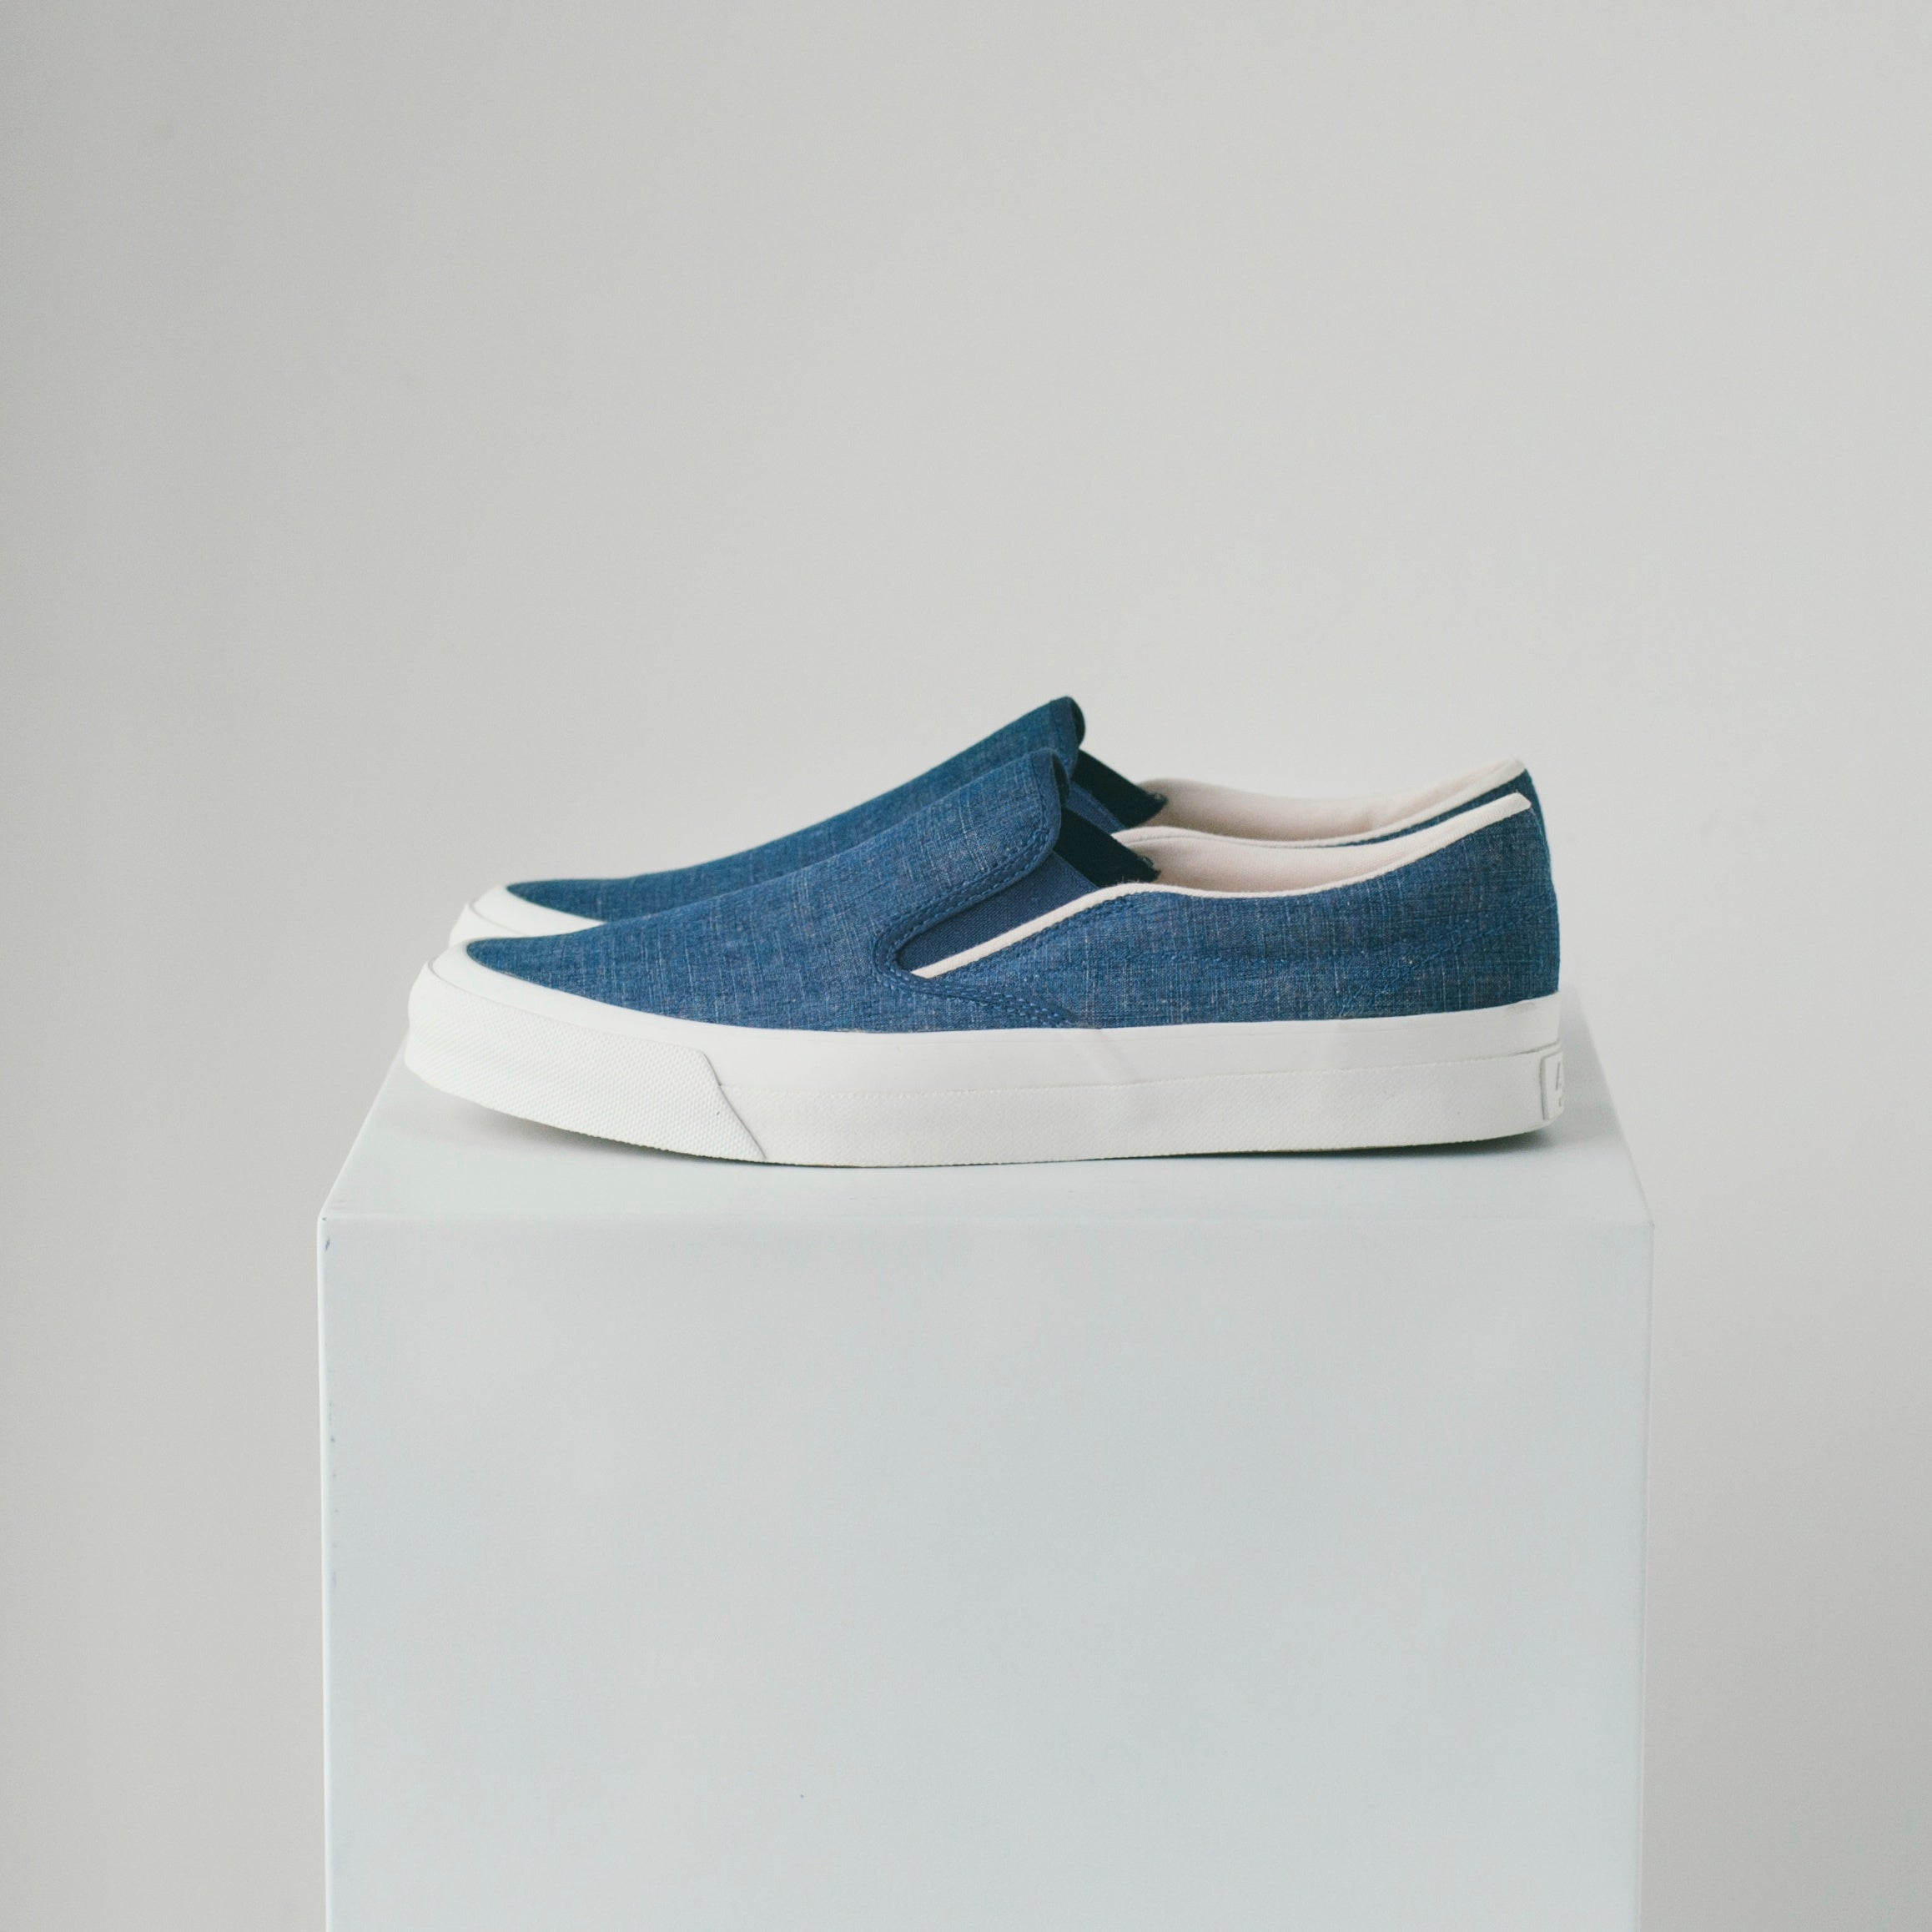 ASAHI DECK SLIP-ON CHAMBRAY - INDIGO